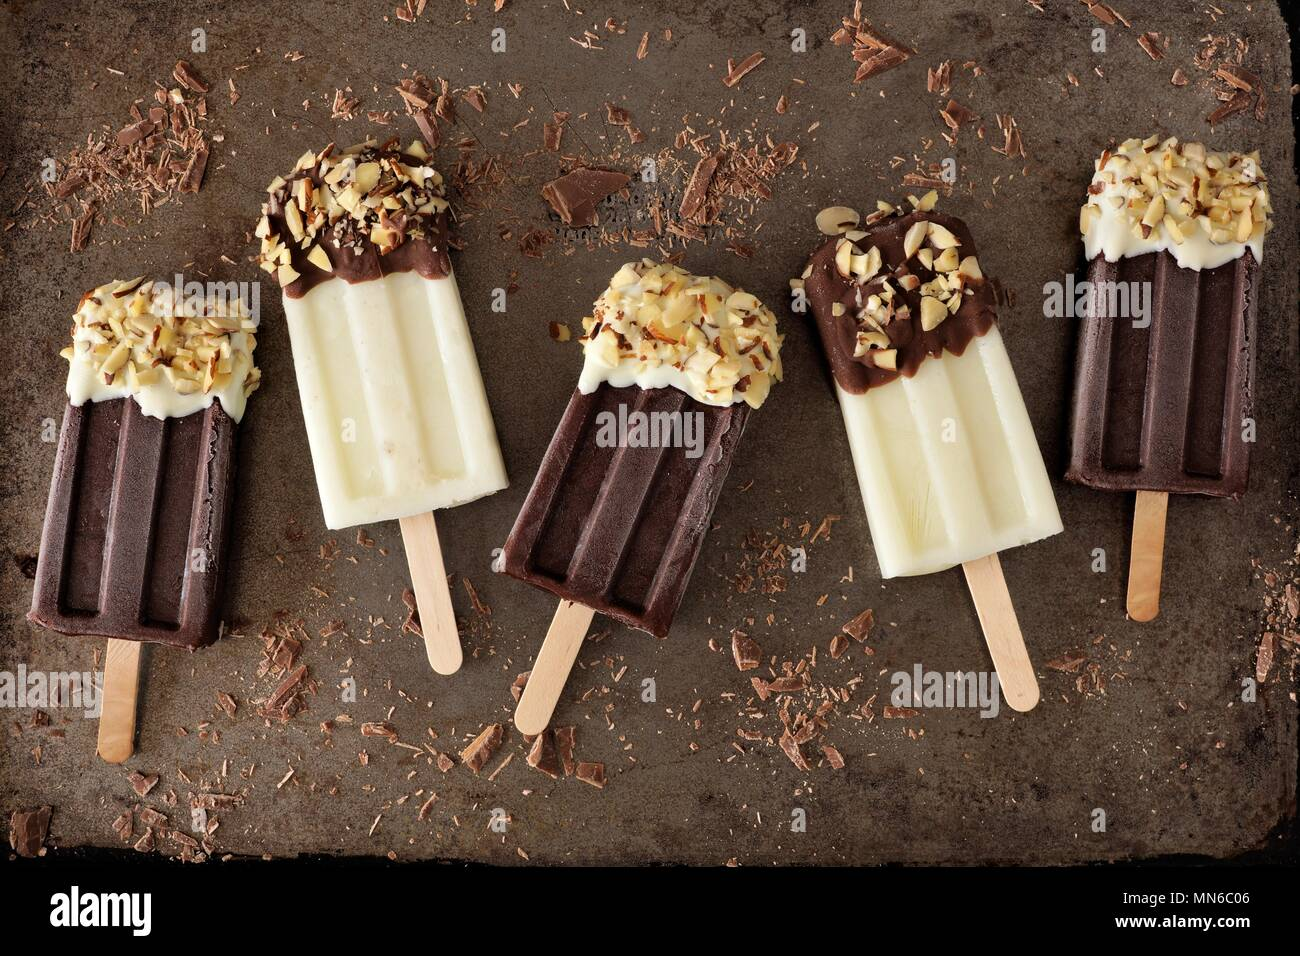 Chocolate and almond dipped white and dark popsicles, on rustic metallic background - Stock Image